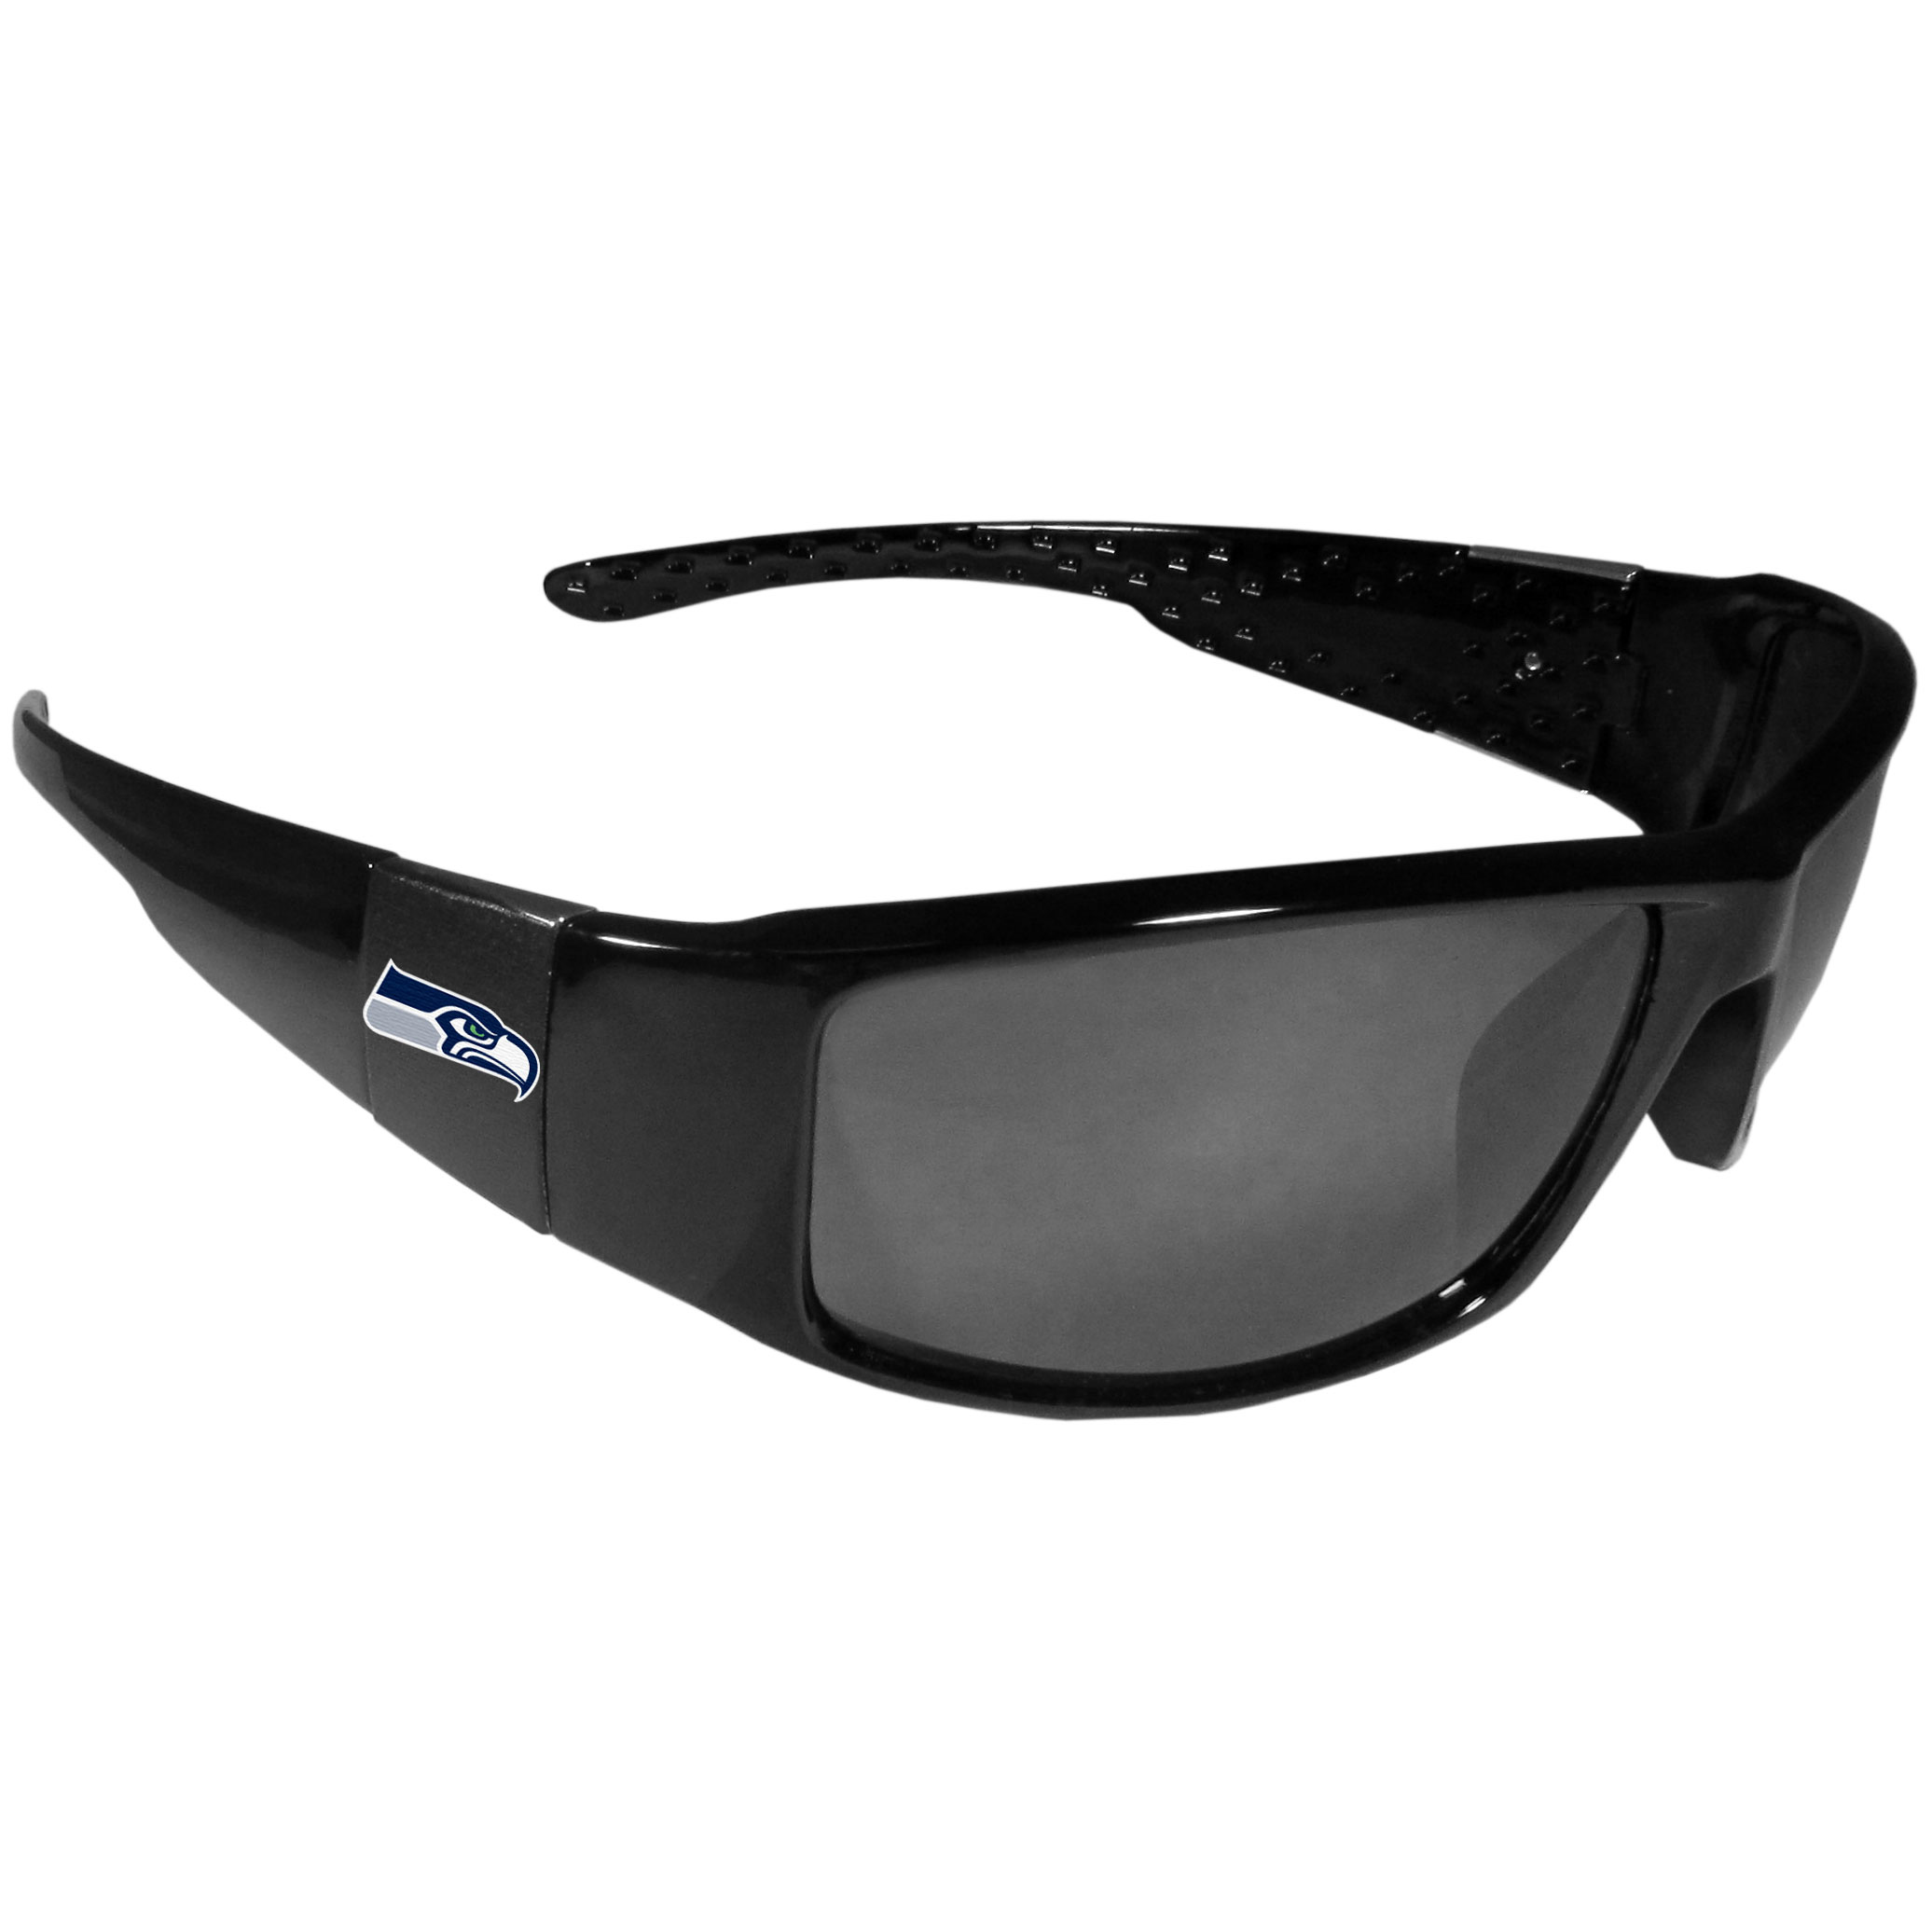 Seattle Seahawks Black Wrap Sunglasses - These designer inspired frames have a sleek look in all black with  Seattle Seahawks shields on each arm with a printed logo. The shades are perfect for any outdoor activity like; golfing, driving, hiking, fishing or cheering on the team at a tailgating event or at a home game day BBQ with a lens rating of 100% UVA/UVB for maximum UV protection. The high-quality frames are as durable as they are fashionable and with their classic look they are the perfect fan accessory that can be worn everyday for every occasion.